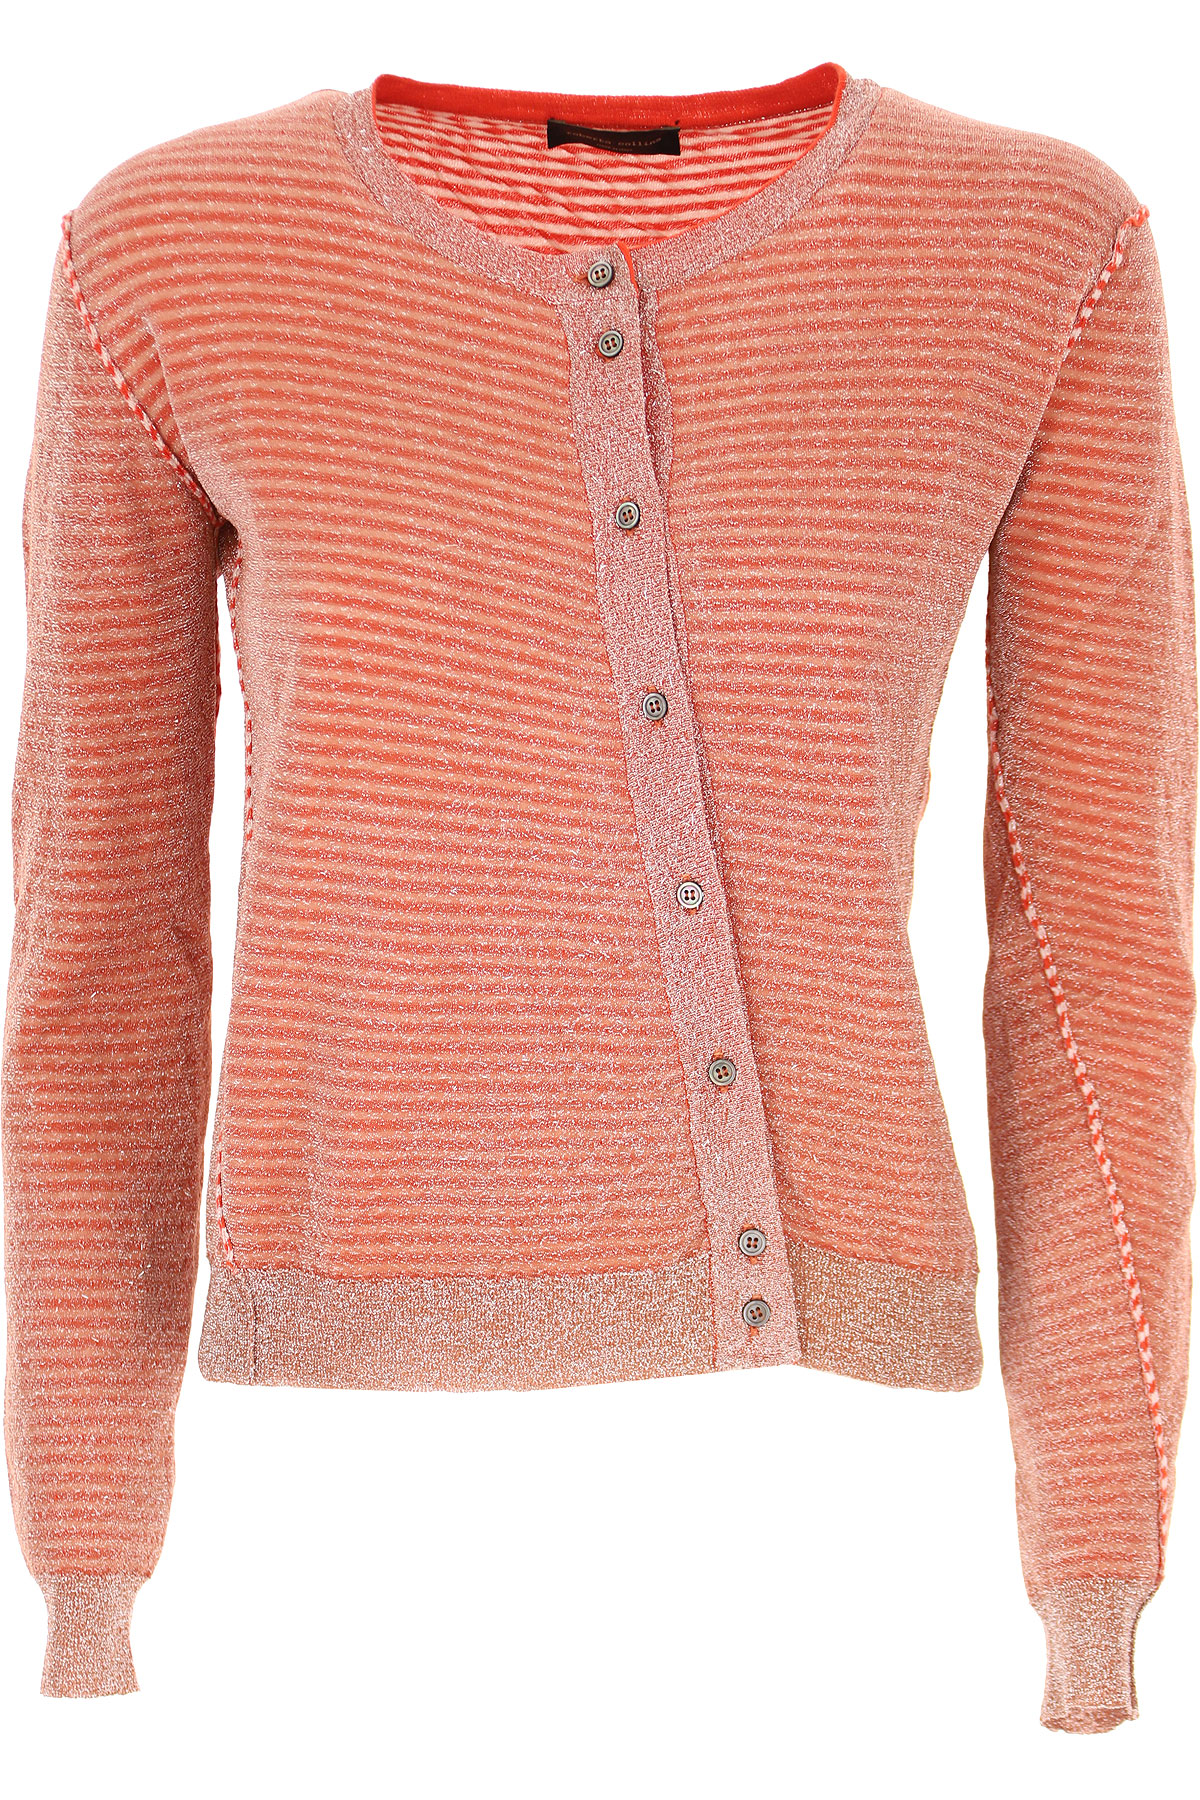 Roberto Collina Sweater for Women Jumper On Sale, Geranium Red, Cotton, 2019, 4 6 8